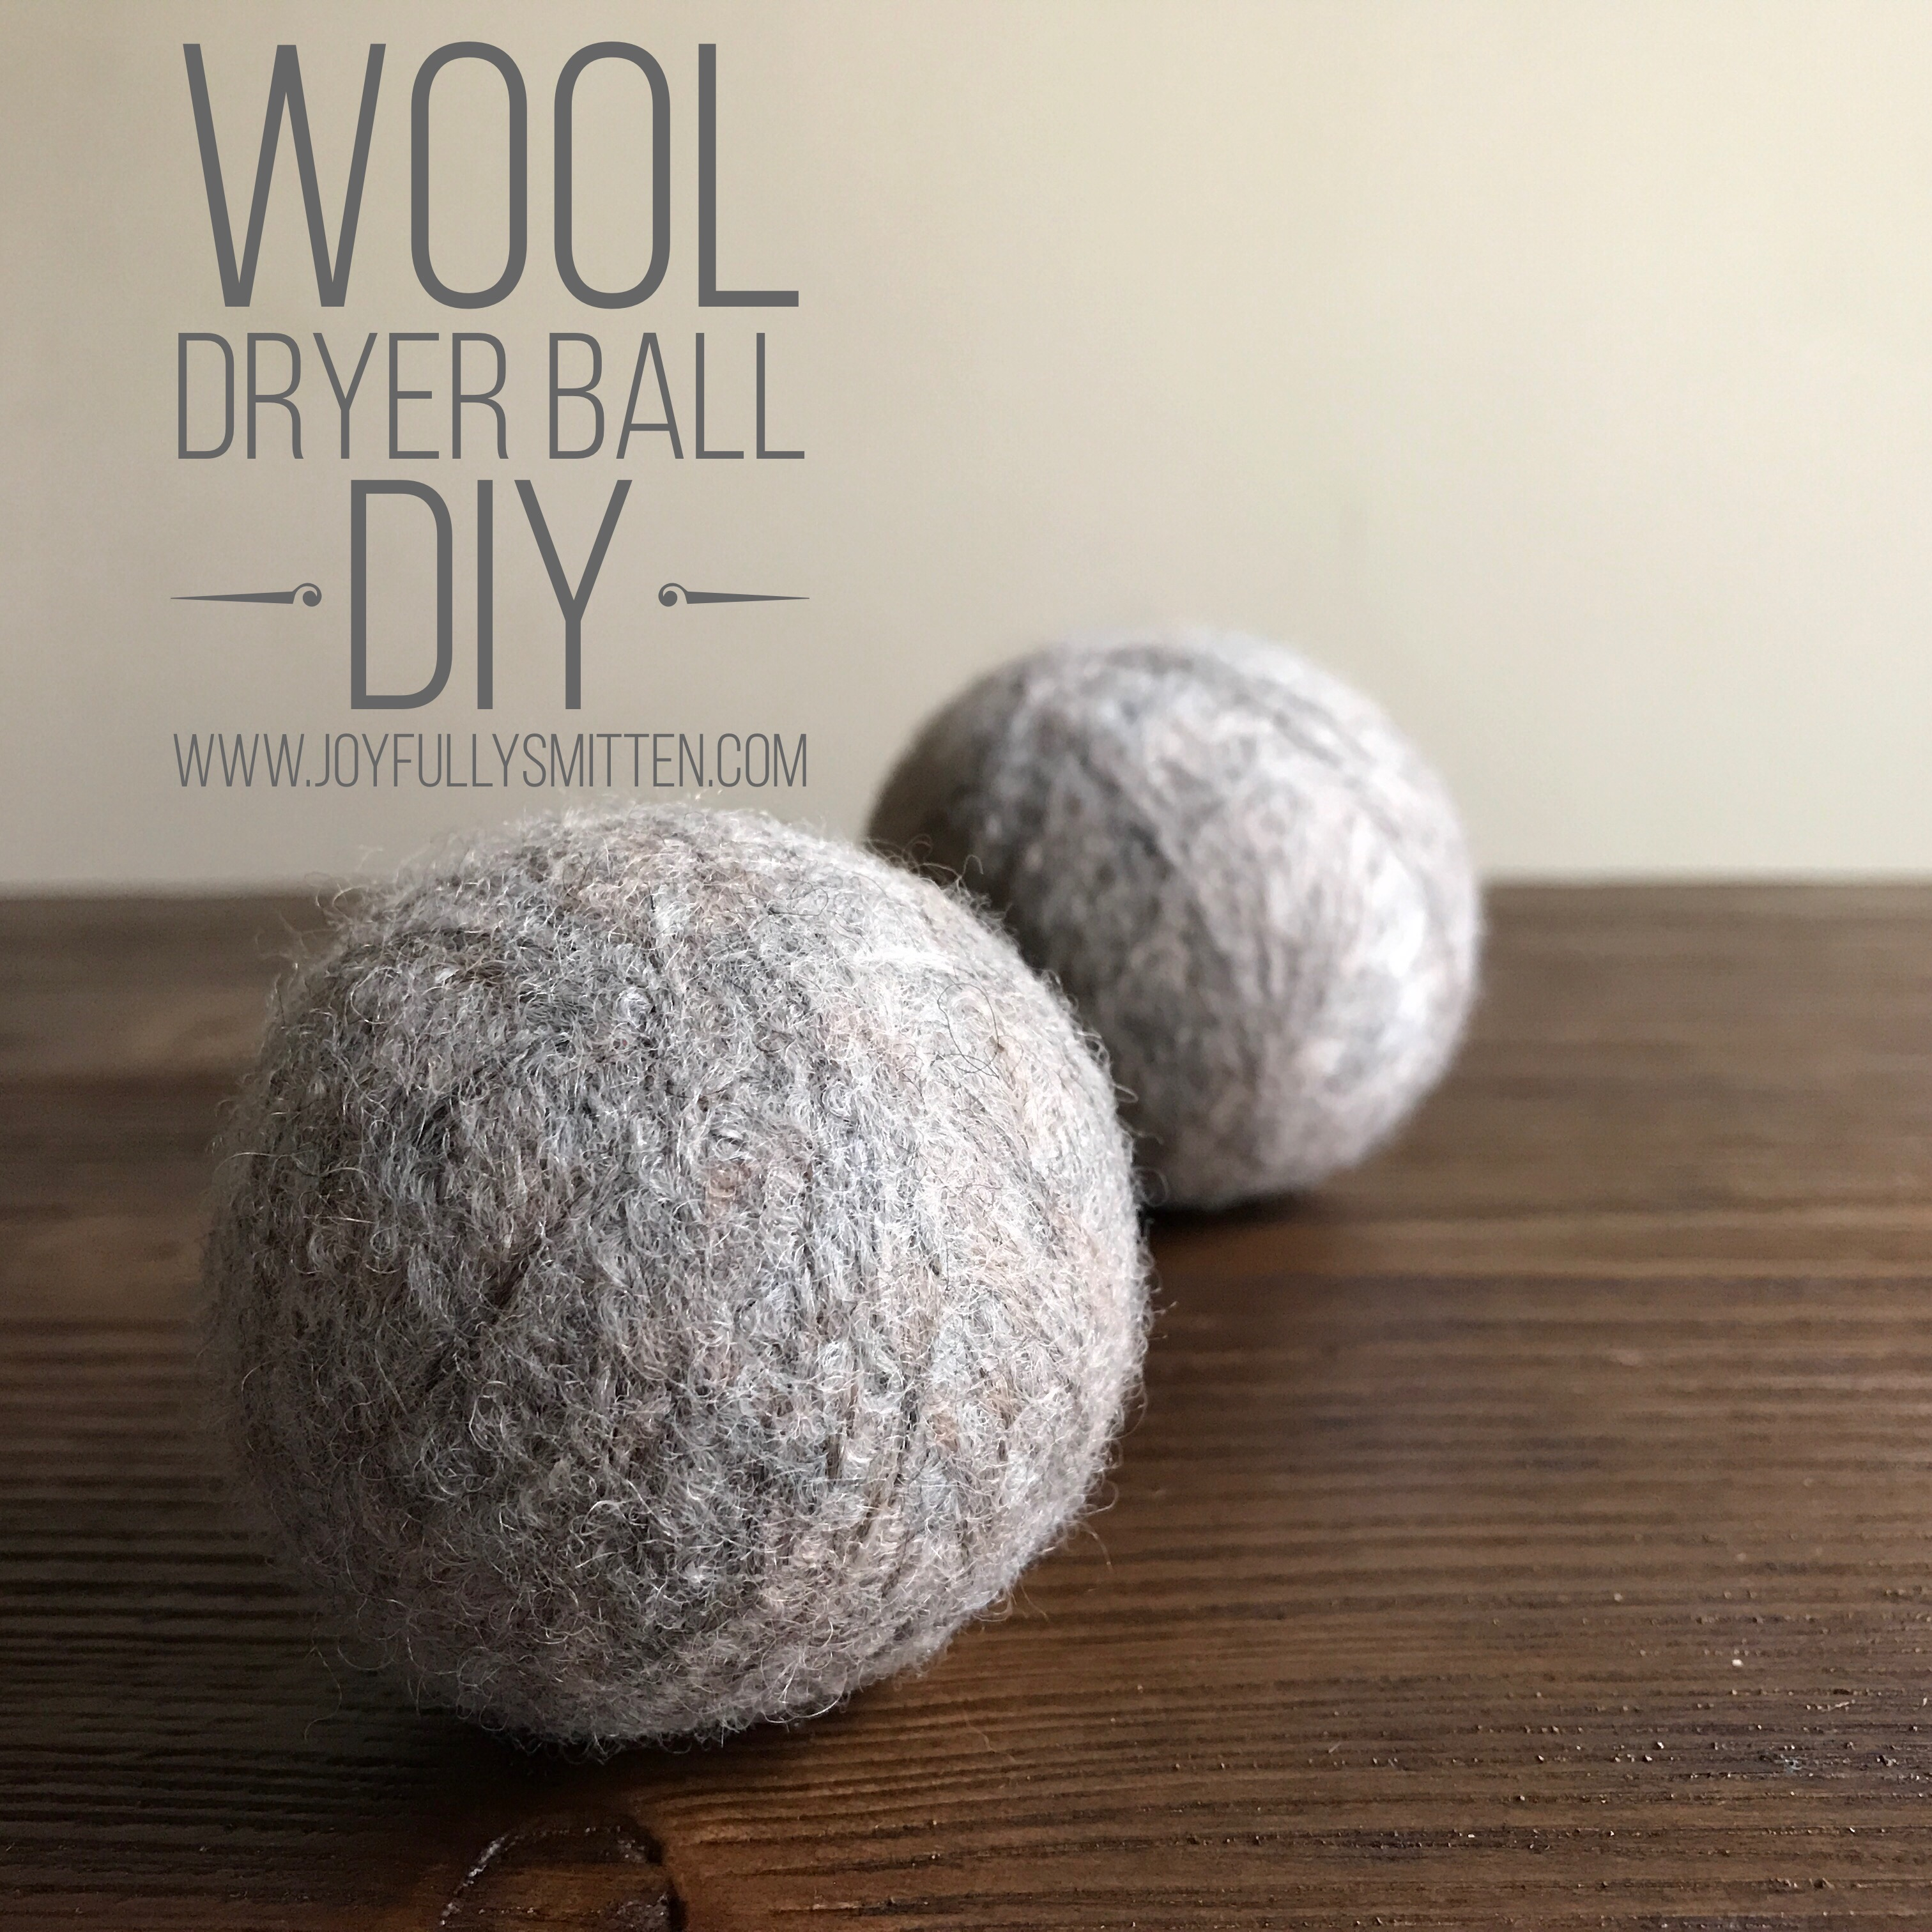 Wool Dryer Ball DIY